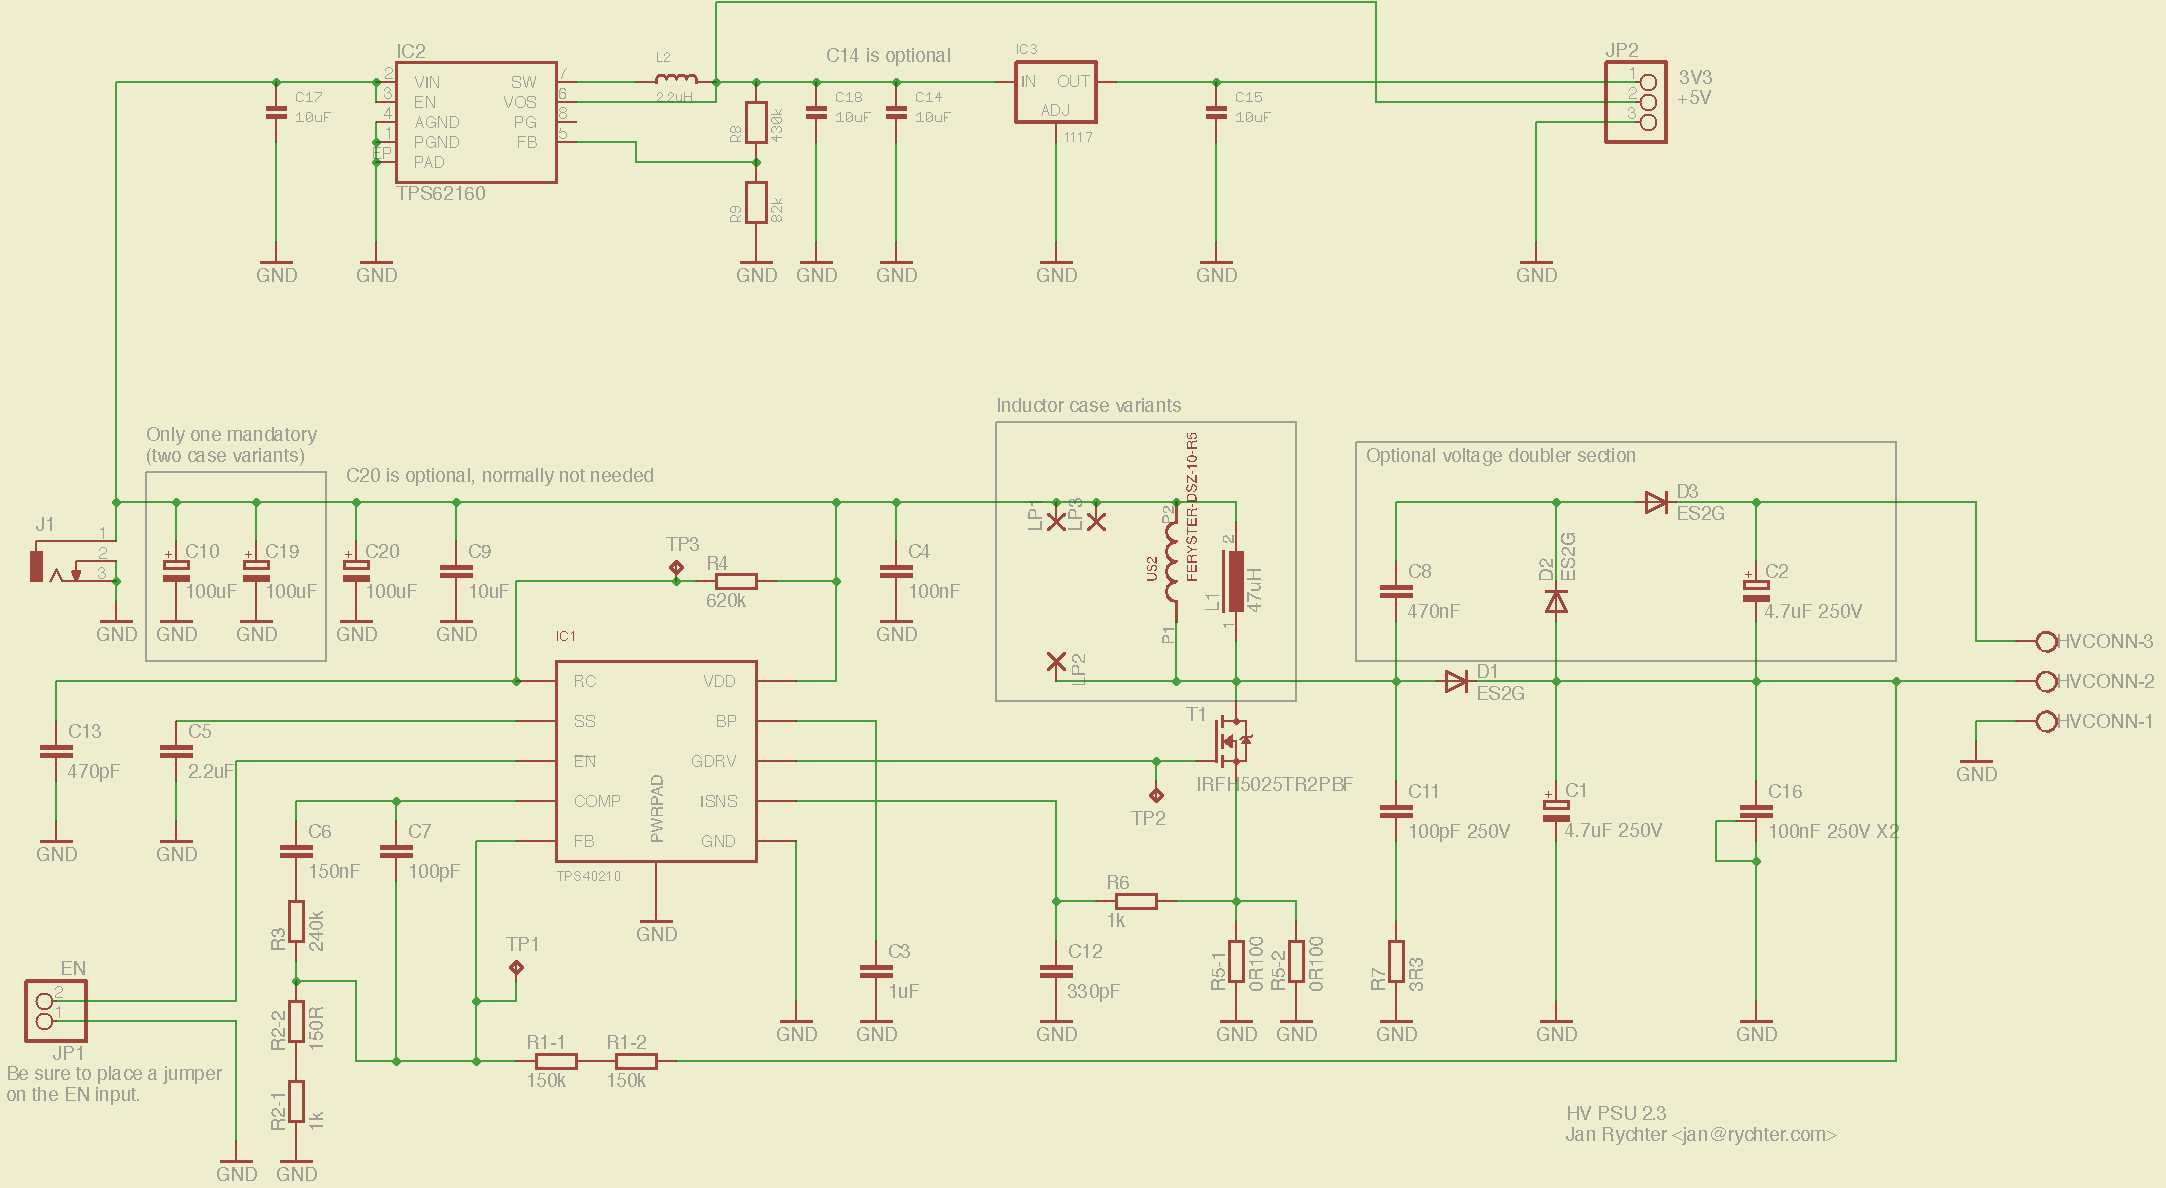 tattoo power supply wiring diagram dayton timer relay nixie tube schematic get free image about